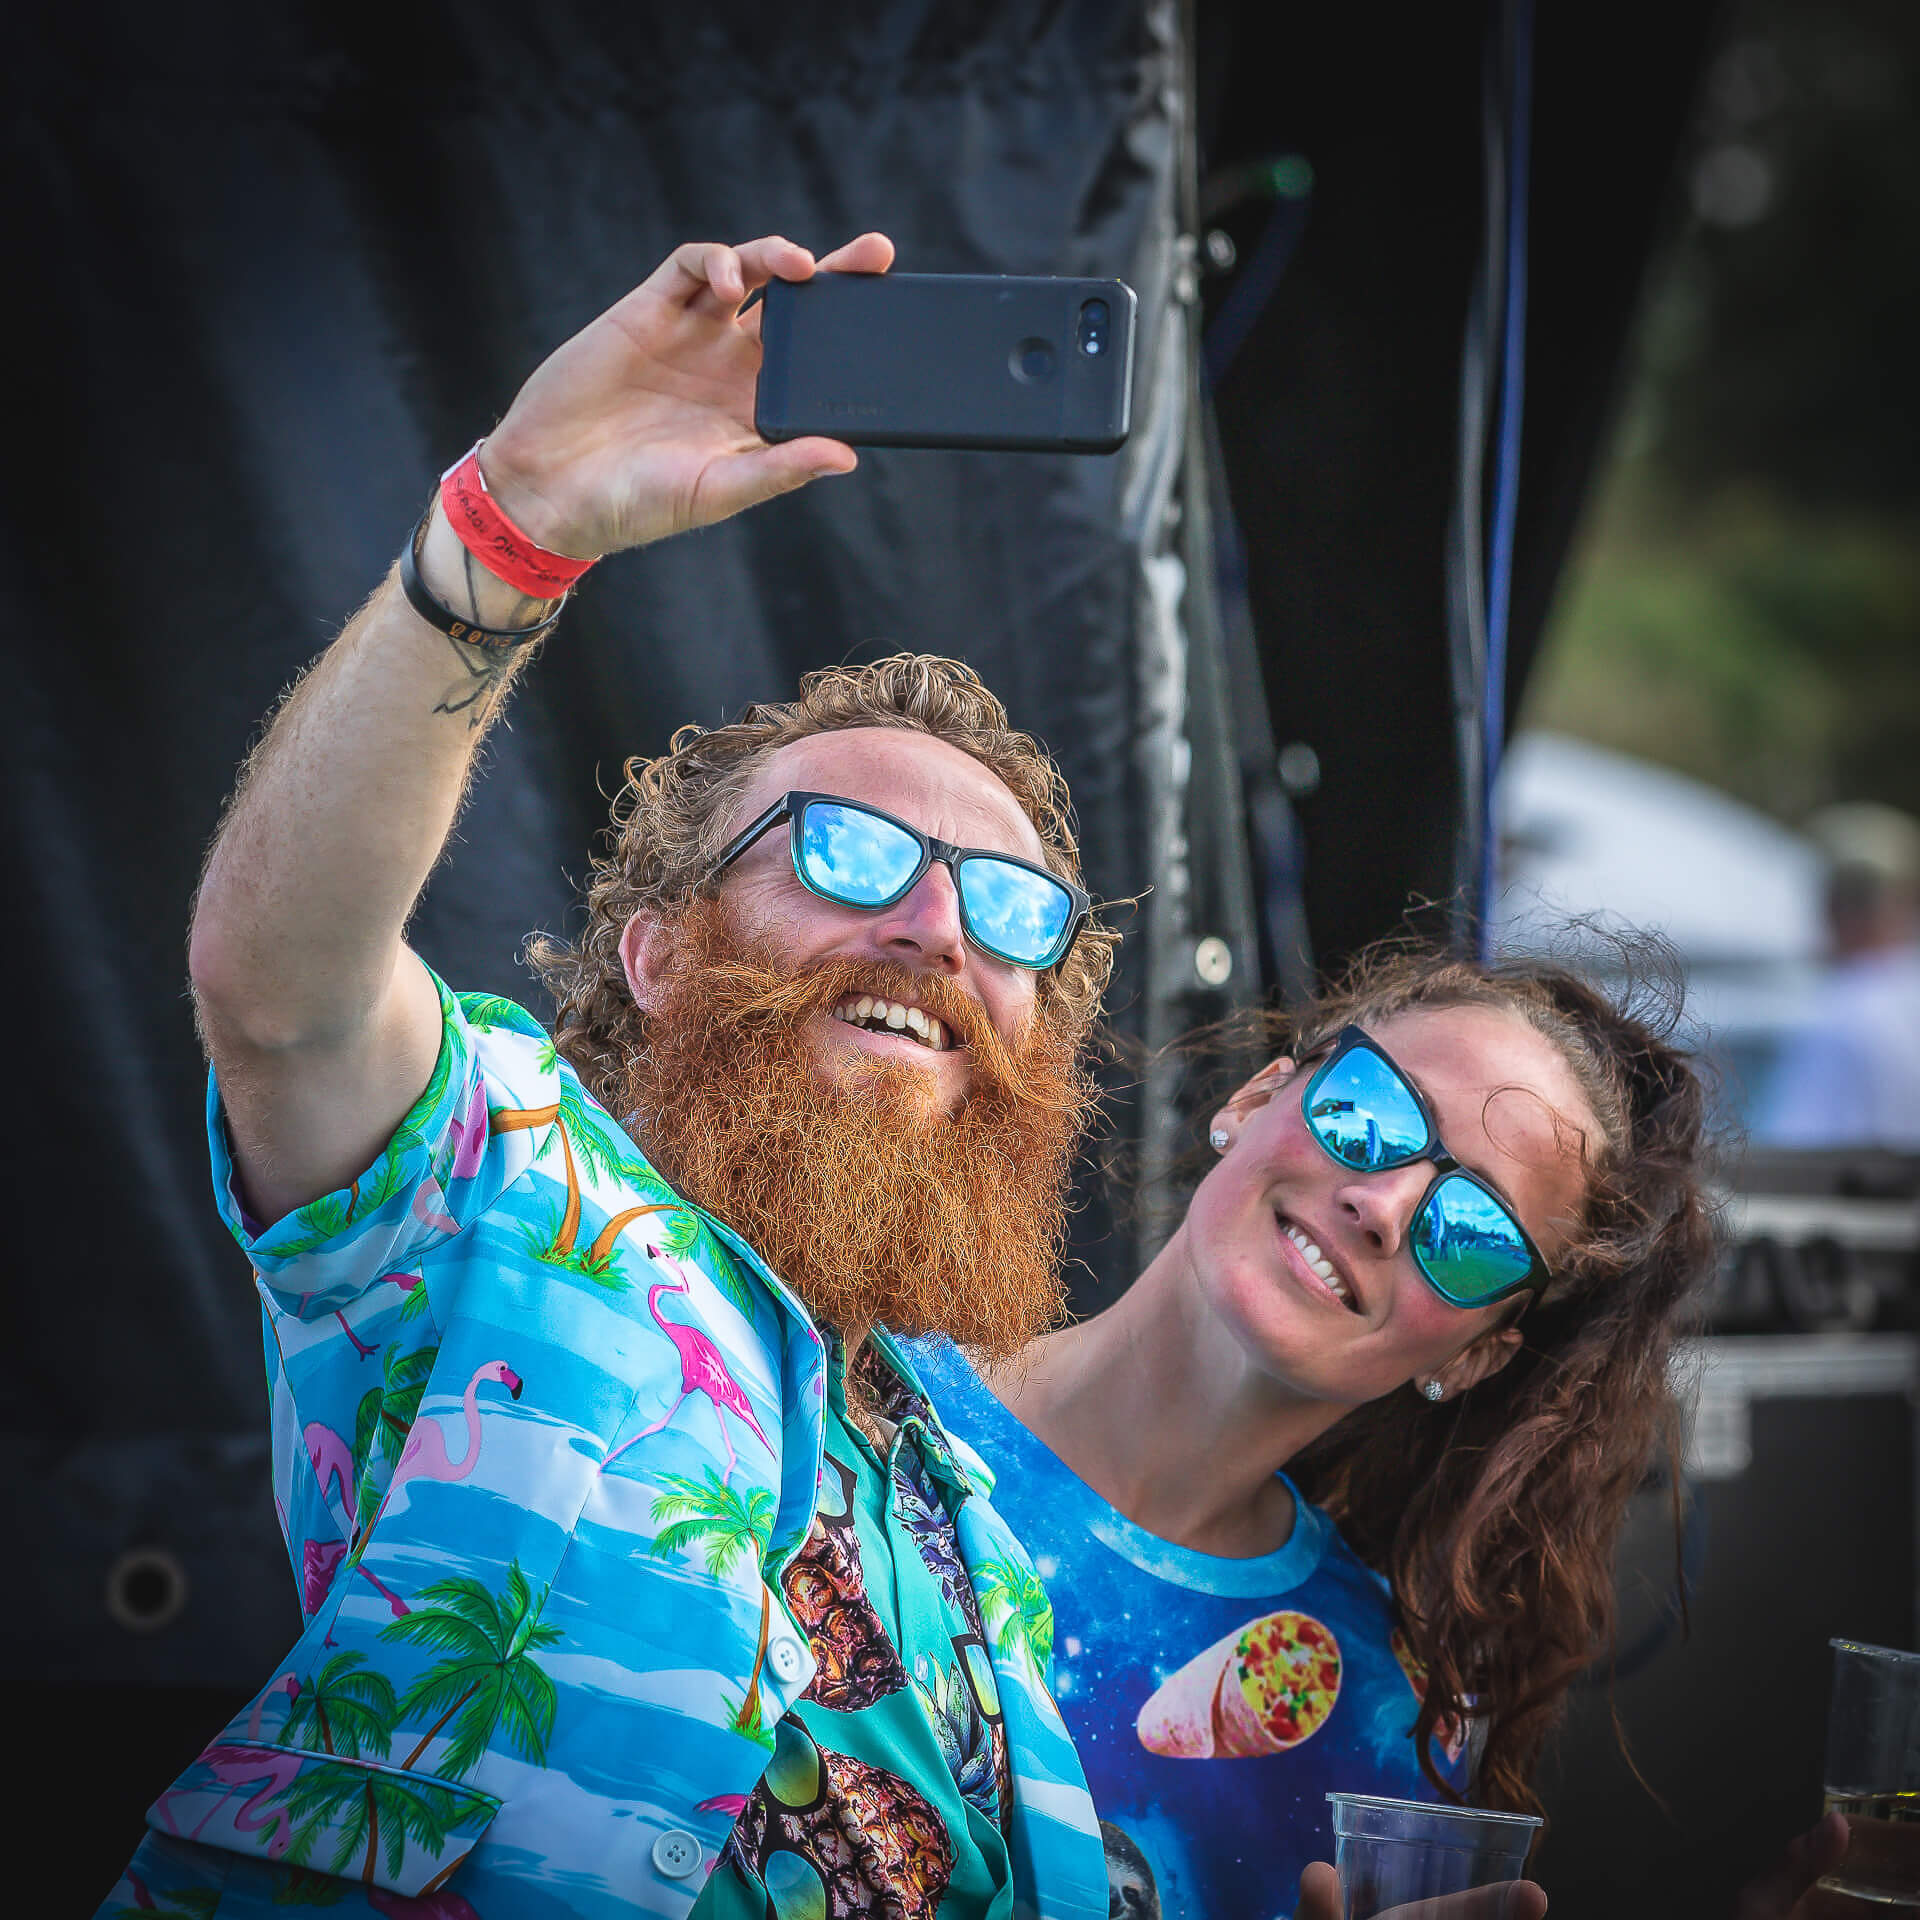 A couple 'smile for the camera' whilst dressed in colourful Hawaiian style dress and vivid blue sunglasses whilst taking a selfie on a mobile phone during the Brendon Cider Festival 2020.